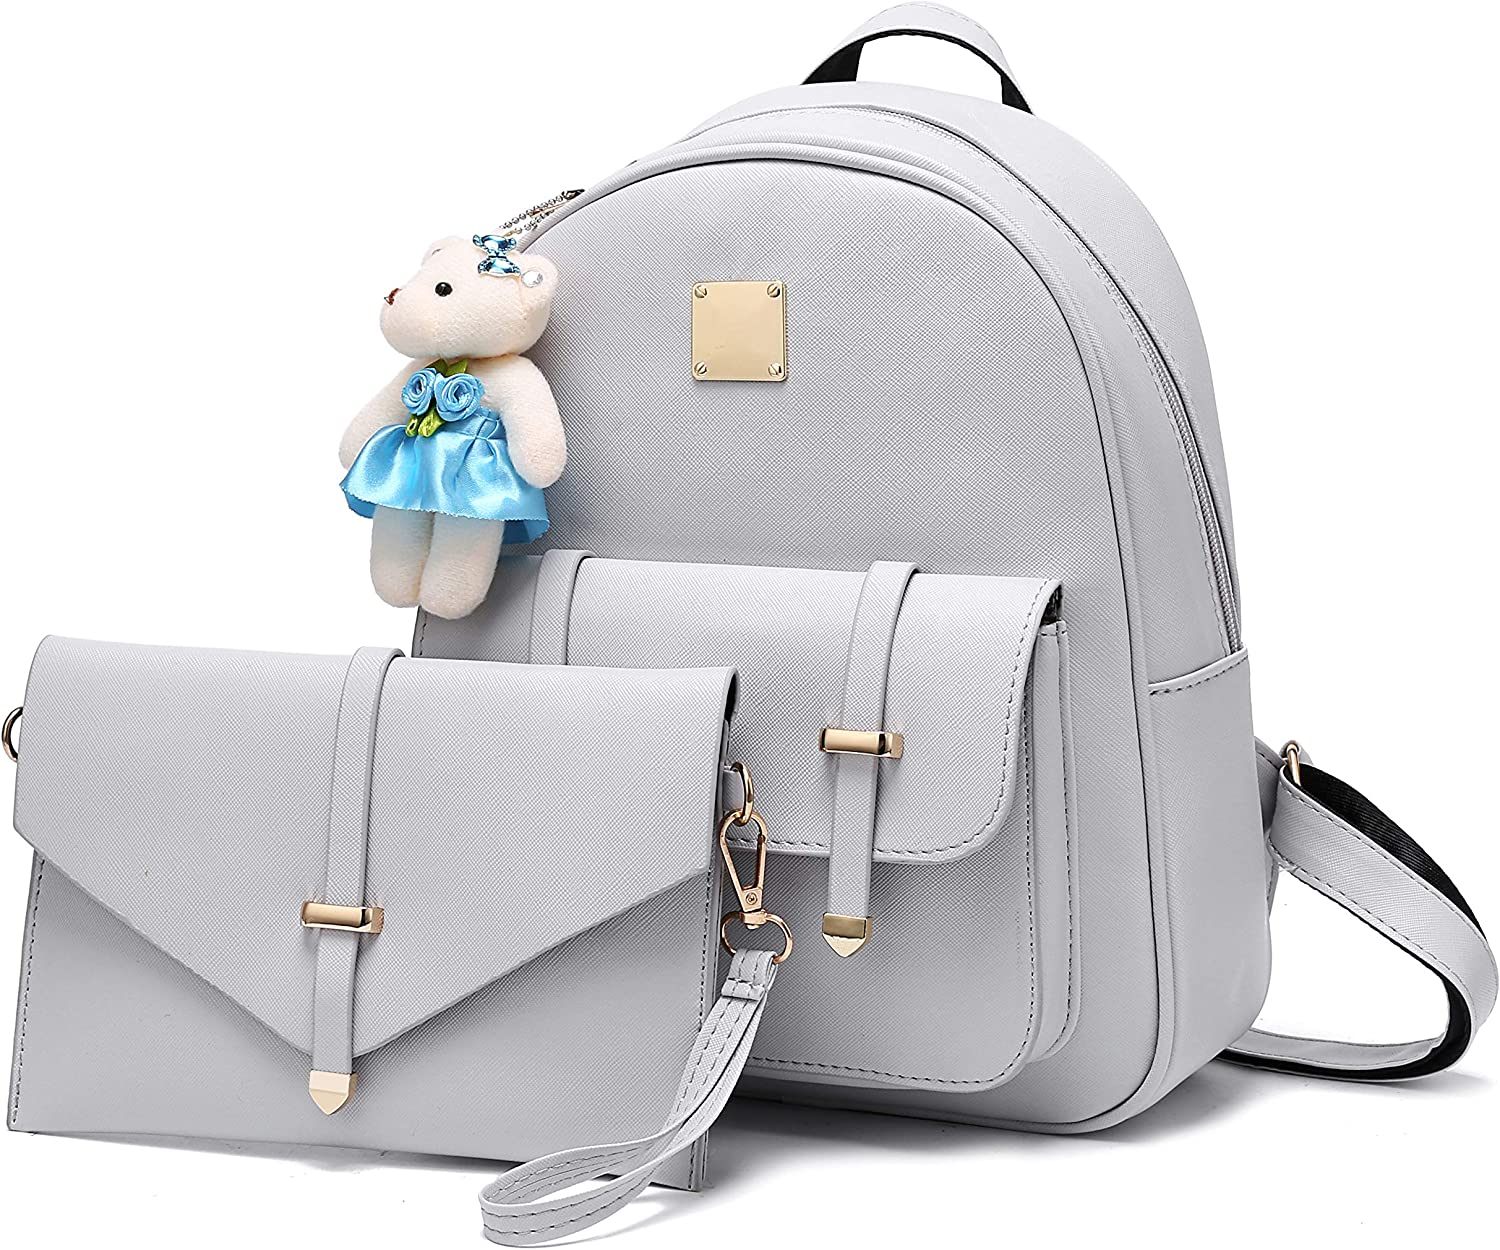 Grey Small Backpack Cute Bookbag Purse for Teen Girls with Bear Keychain